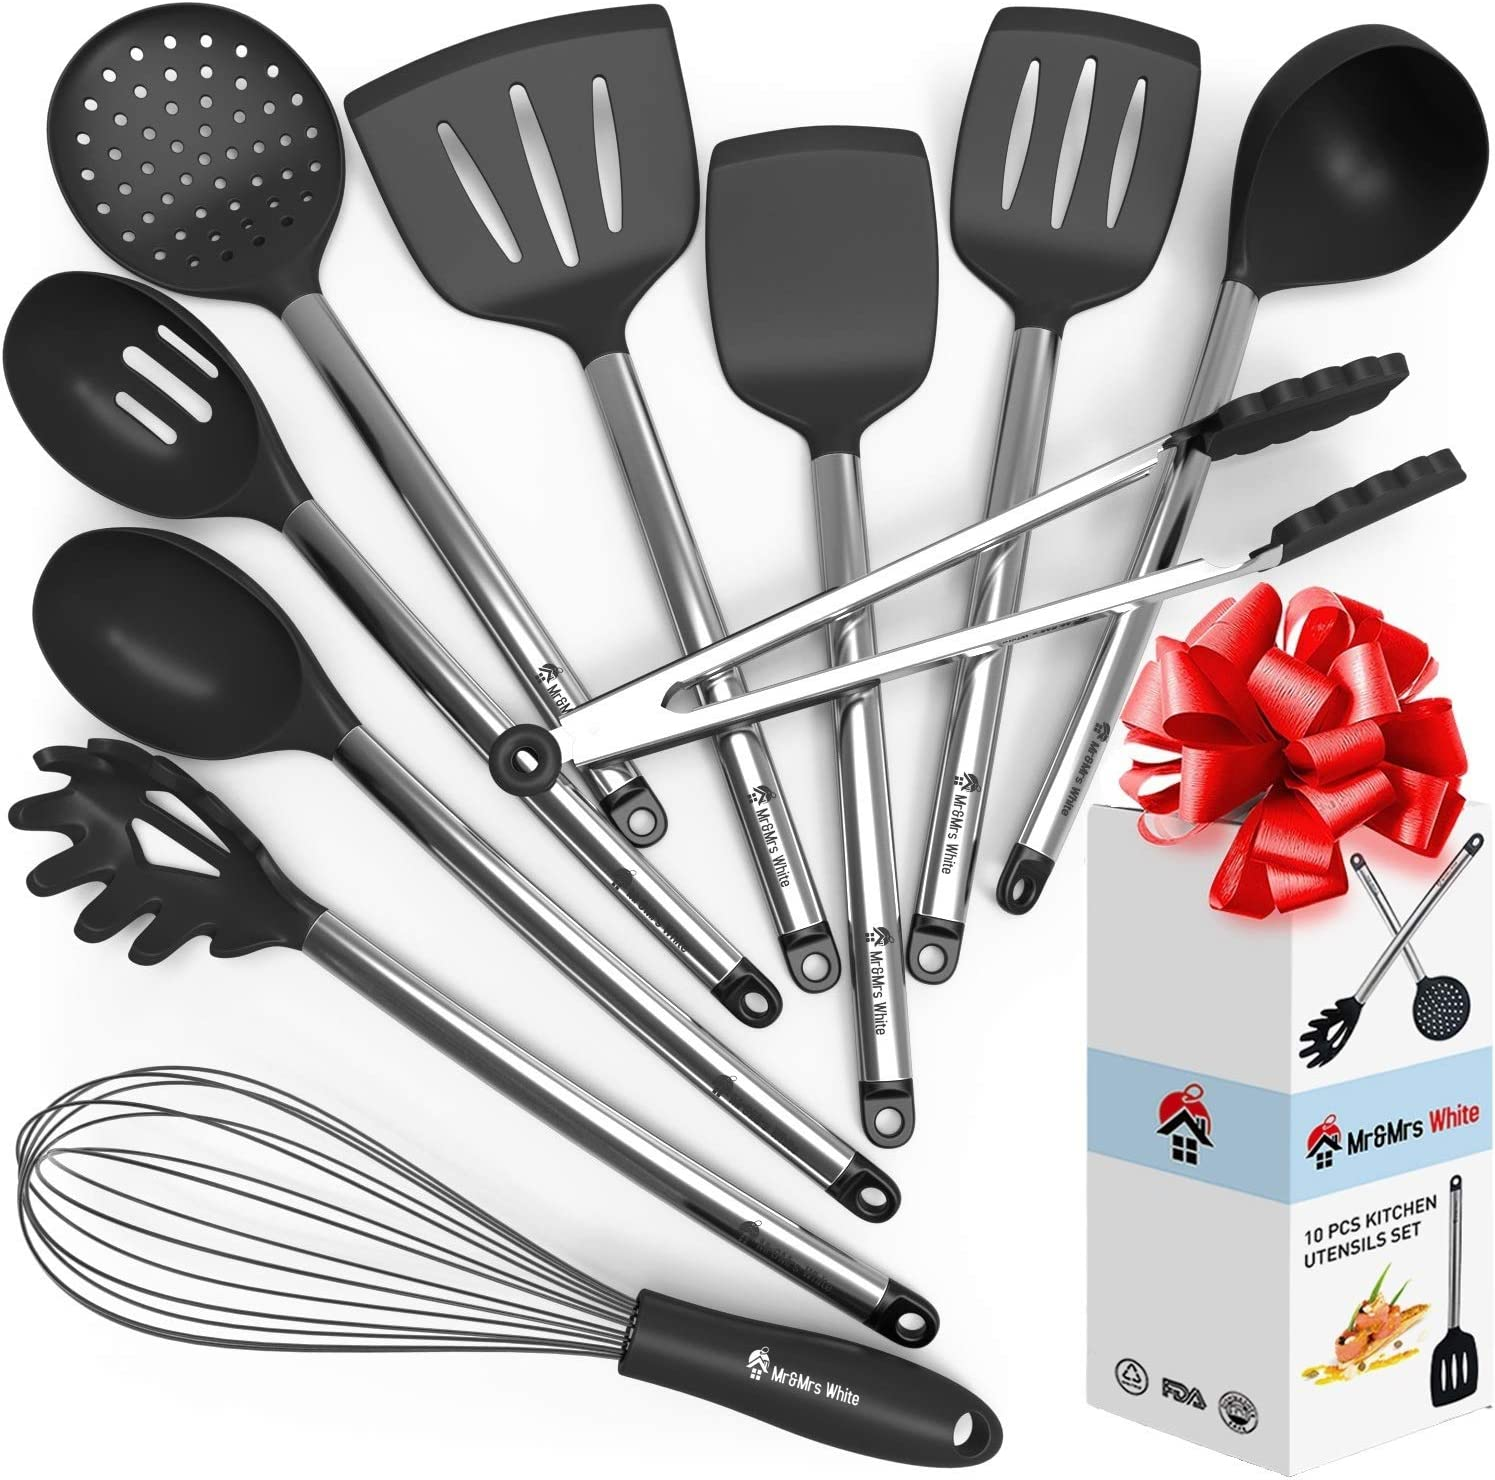 Cooking Silicone Utensils Set 10 - Best Nonstick Kitchen Cookware Utensil Sets - Large Hanging Spoons Spatula Set